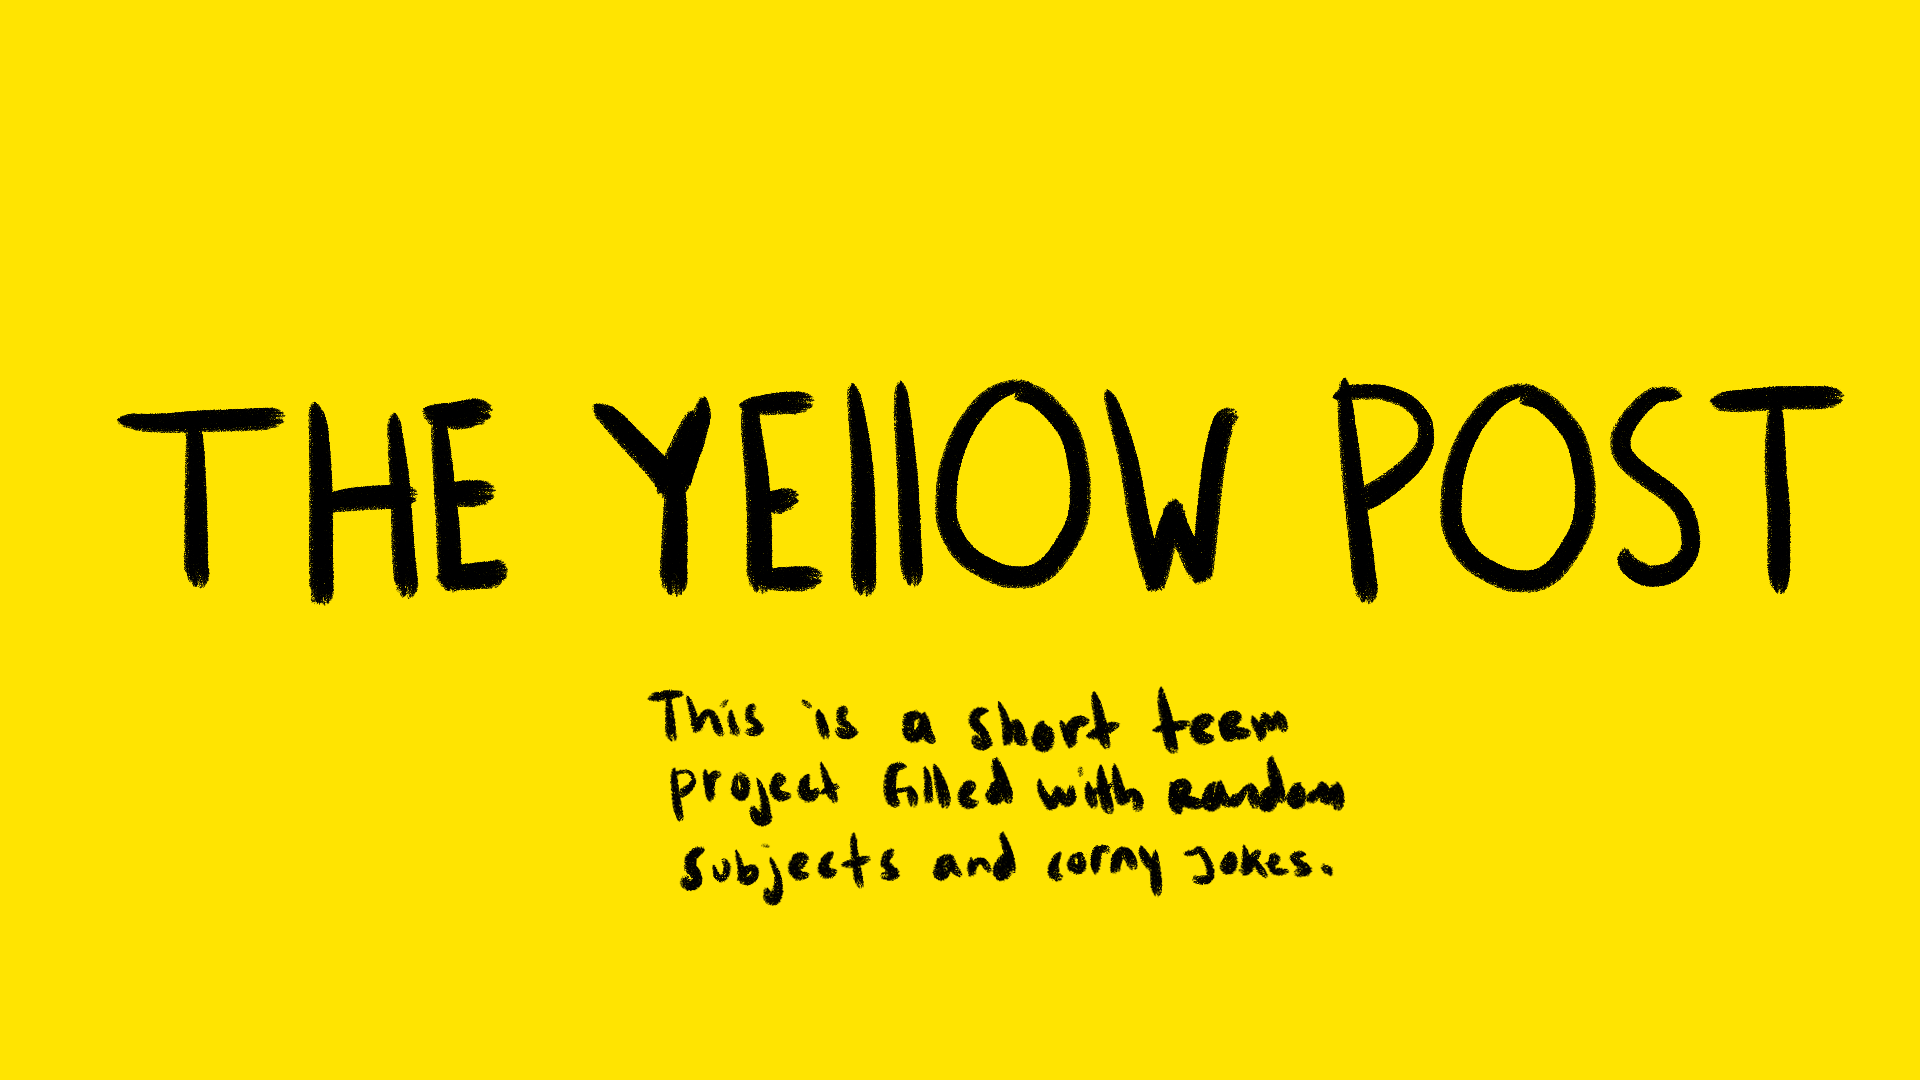 the yellow post info.png